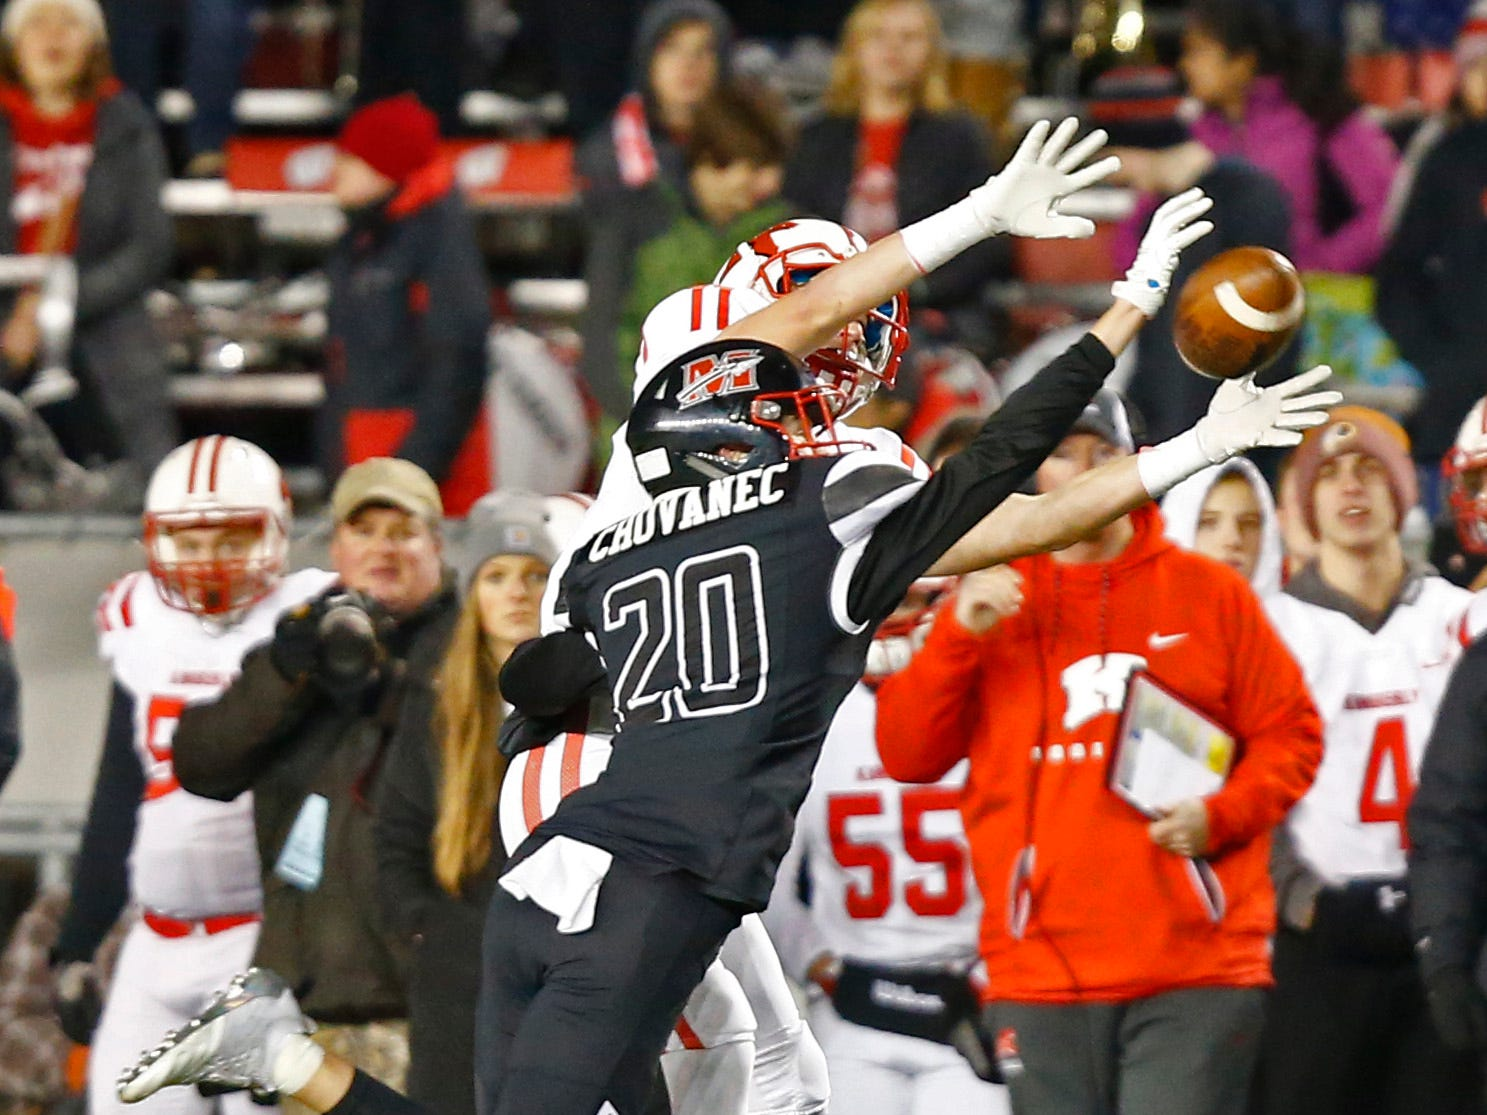 Muskego's Sam Chovanec blocks a pass intended for Kimberly's Connoe Wnek during the WIAA Division 1 championship.